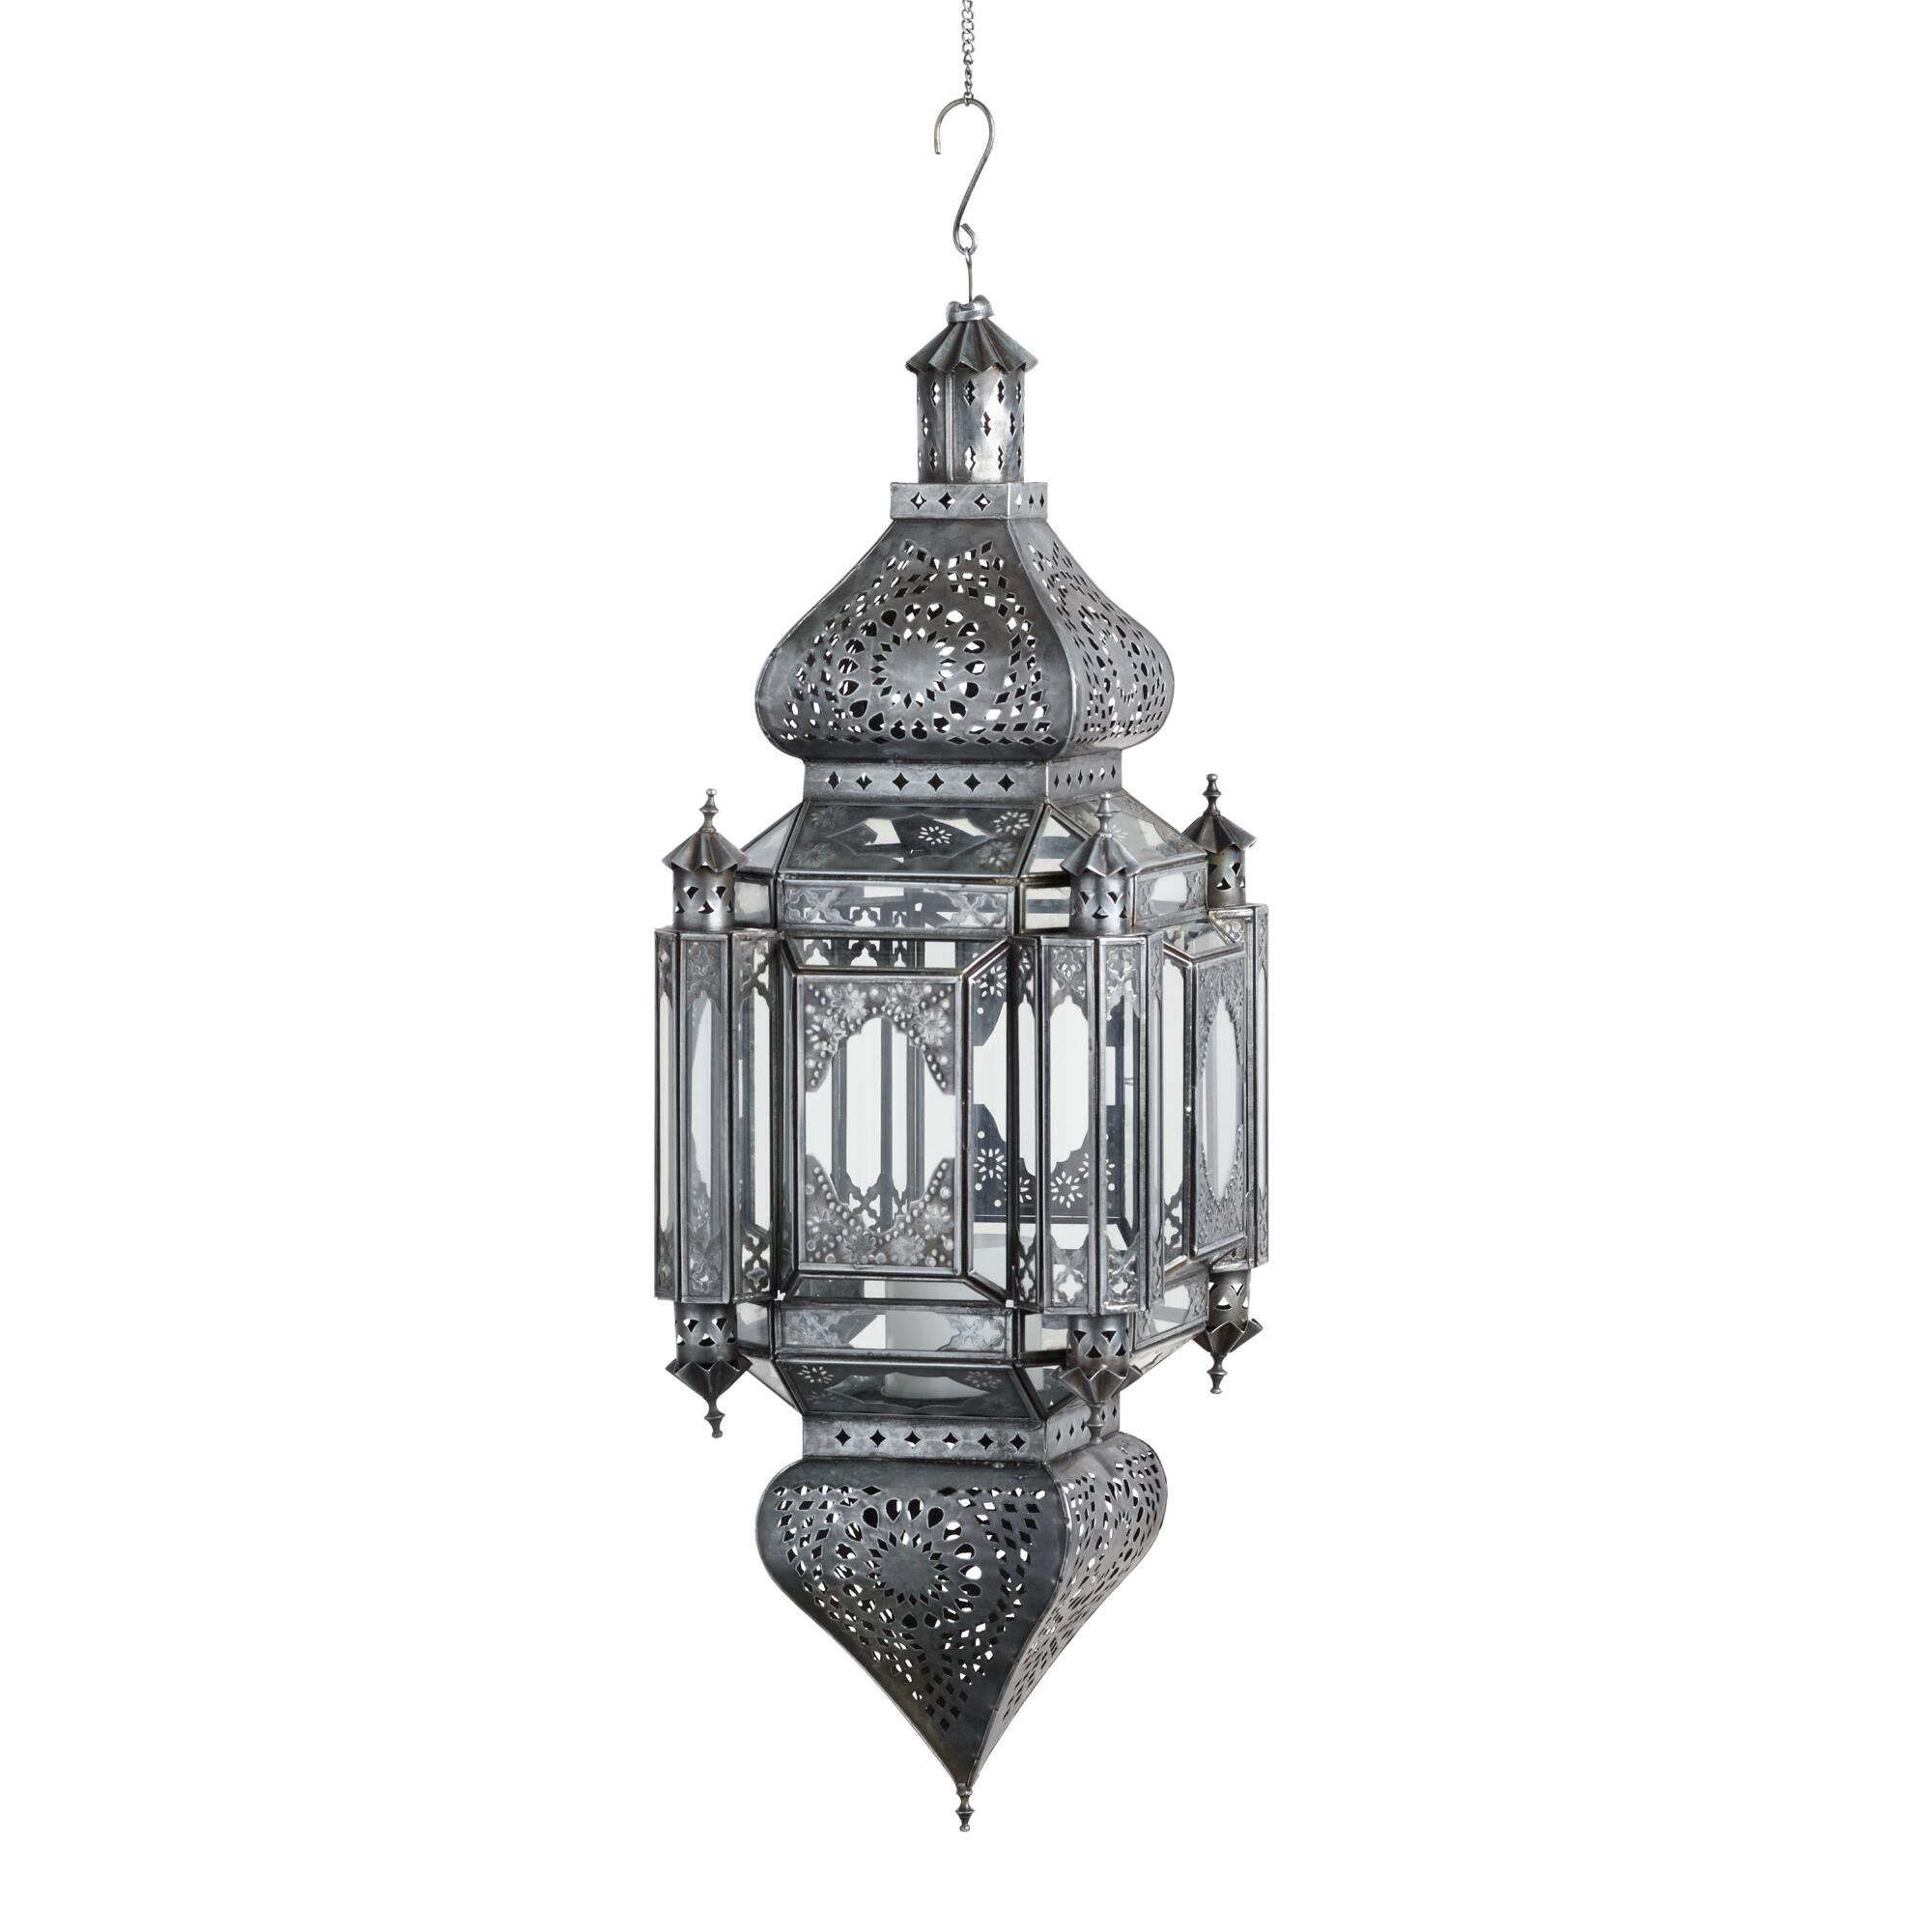 serene or spaces mag table full for kitchen living of decorative island dining lamp lanterns hanging moroccan metal heo globe small view ideal min set